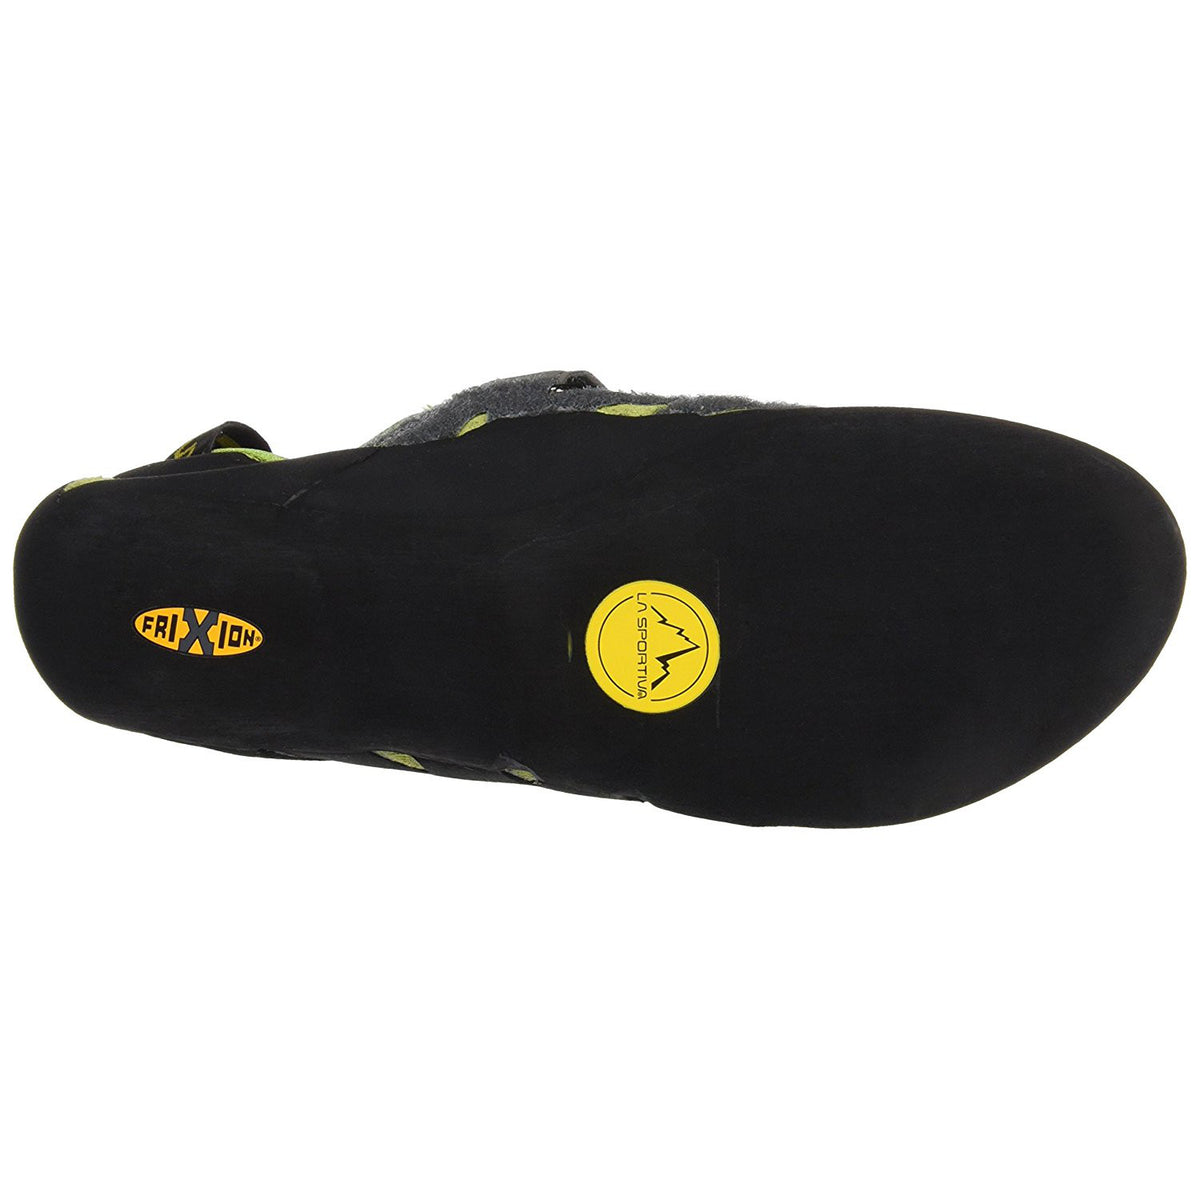 La Sportiva Tarantula climbing shoe, view of the sole